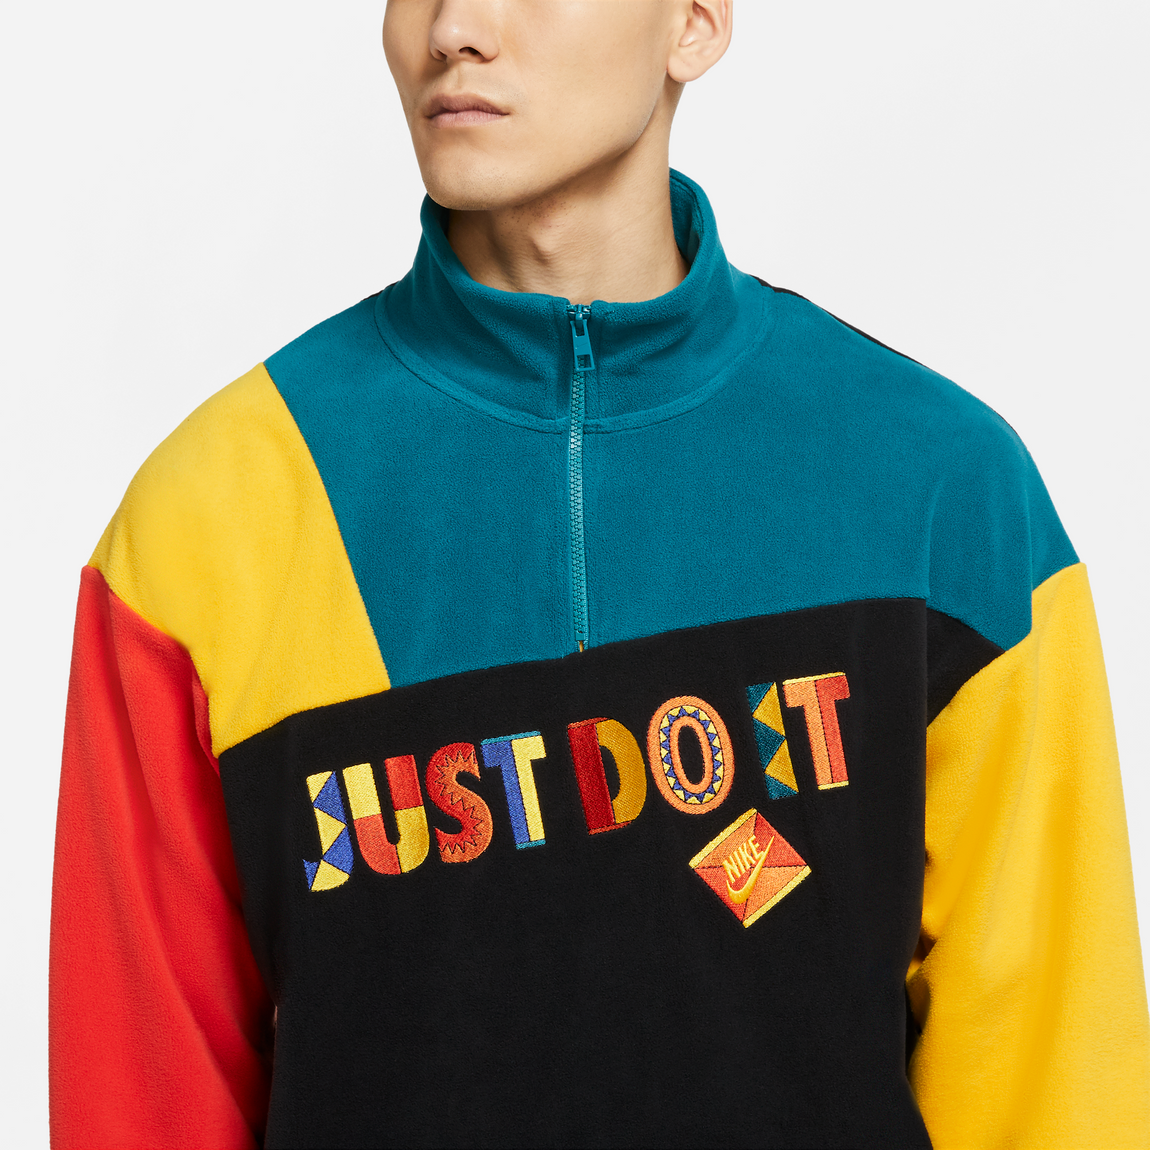 Nike Sportswear Re-Issue Fleece Quarter Zip Up (Black/Univ. Gold/Geode Teal) - Nike Sportswear Re-Issue Fleece Quarter Zip Up (Black/Univ. Gold/Geode Teal) -